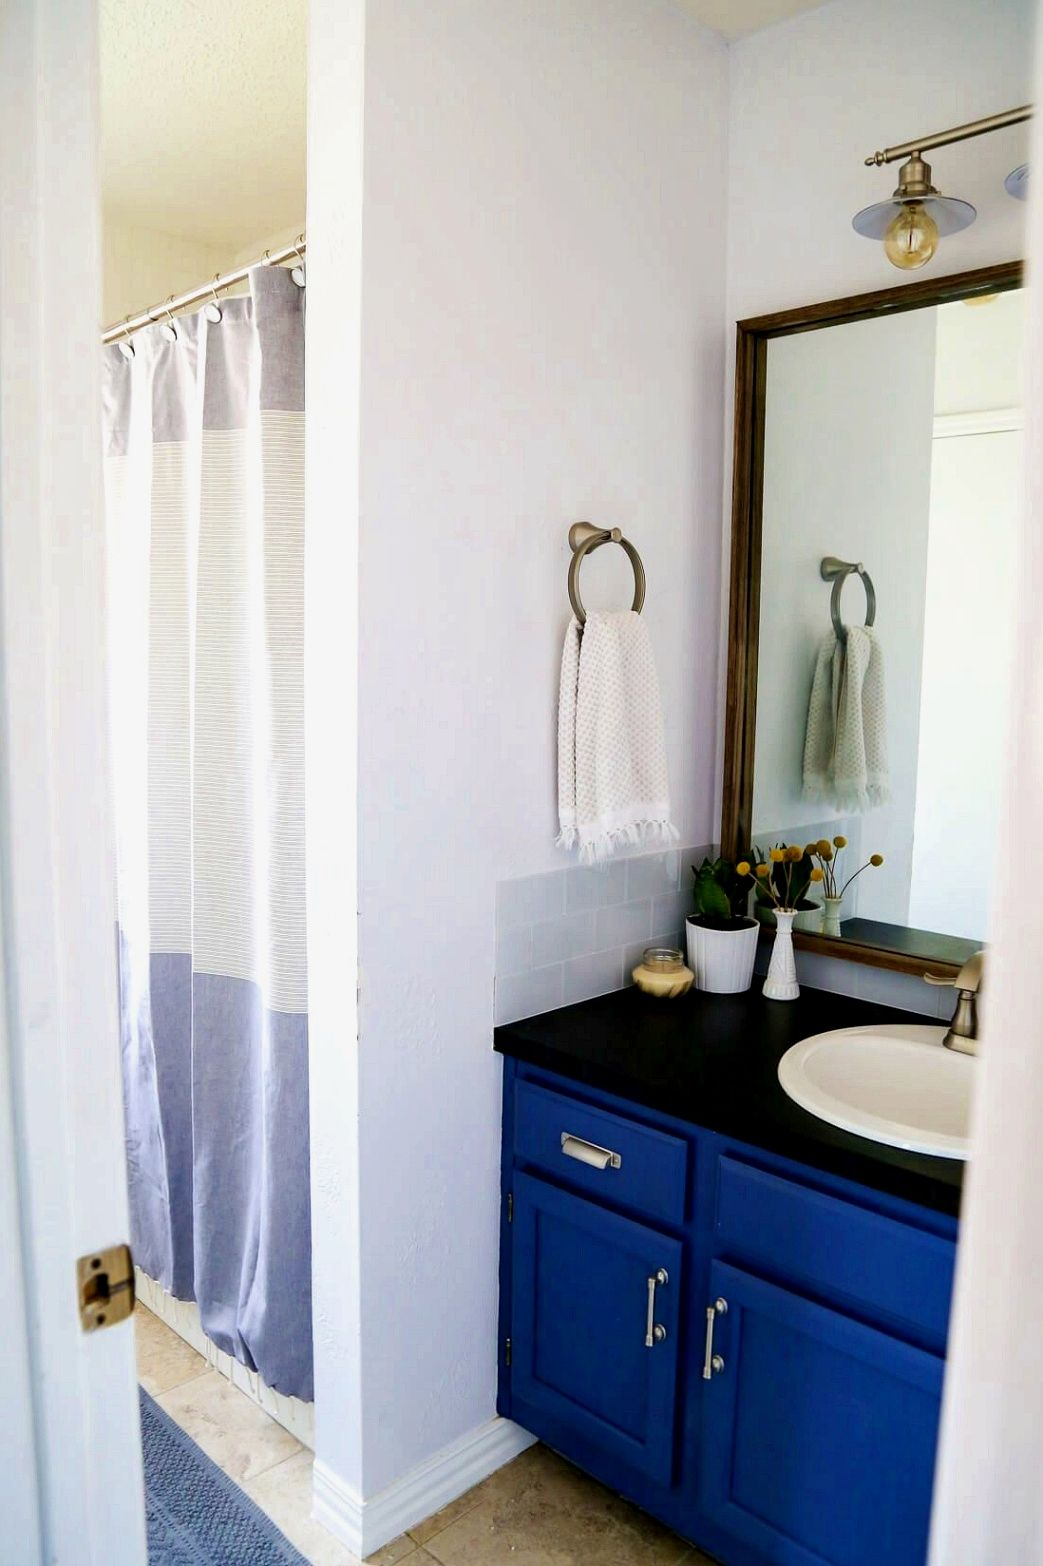 Bathroom decor ideas this is a decorating tip for the entire family buy cheap